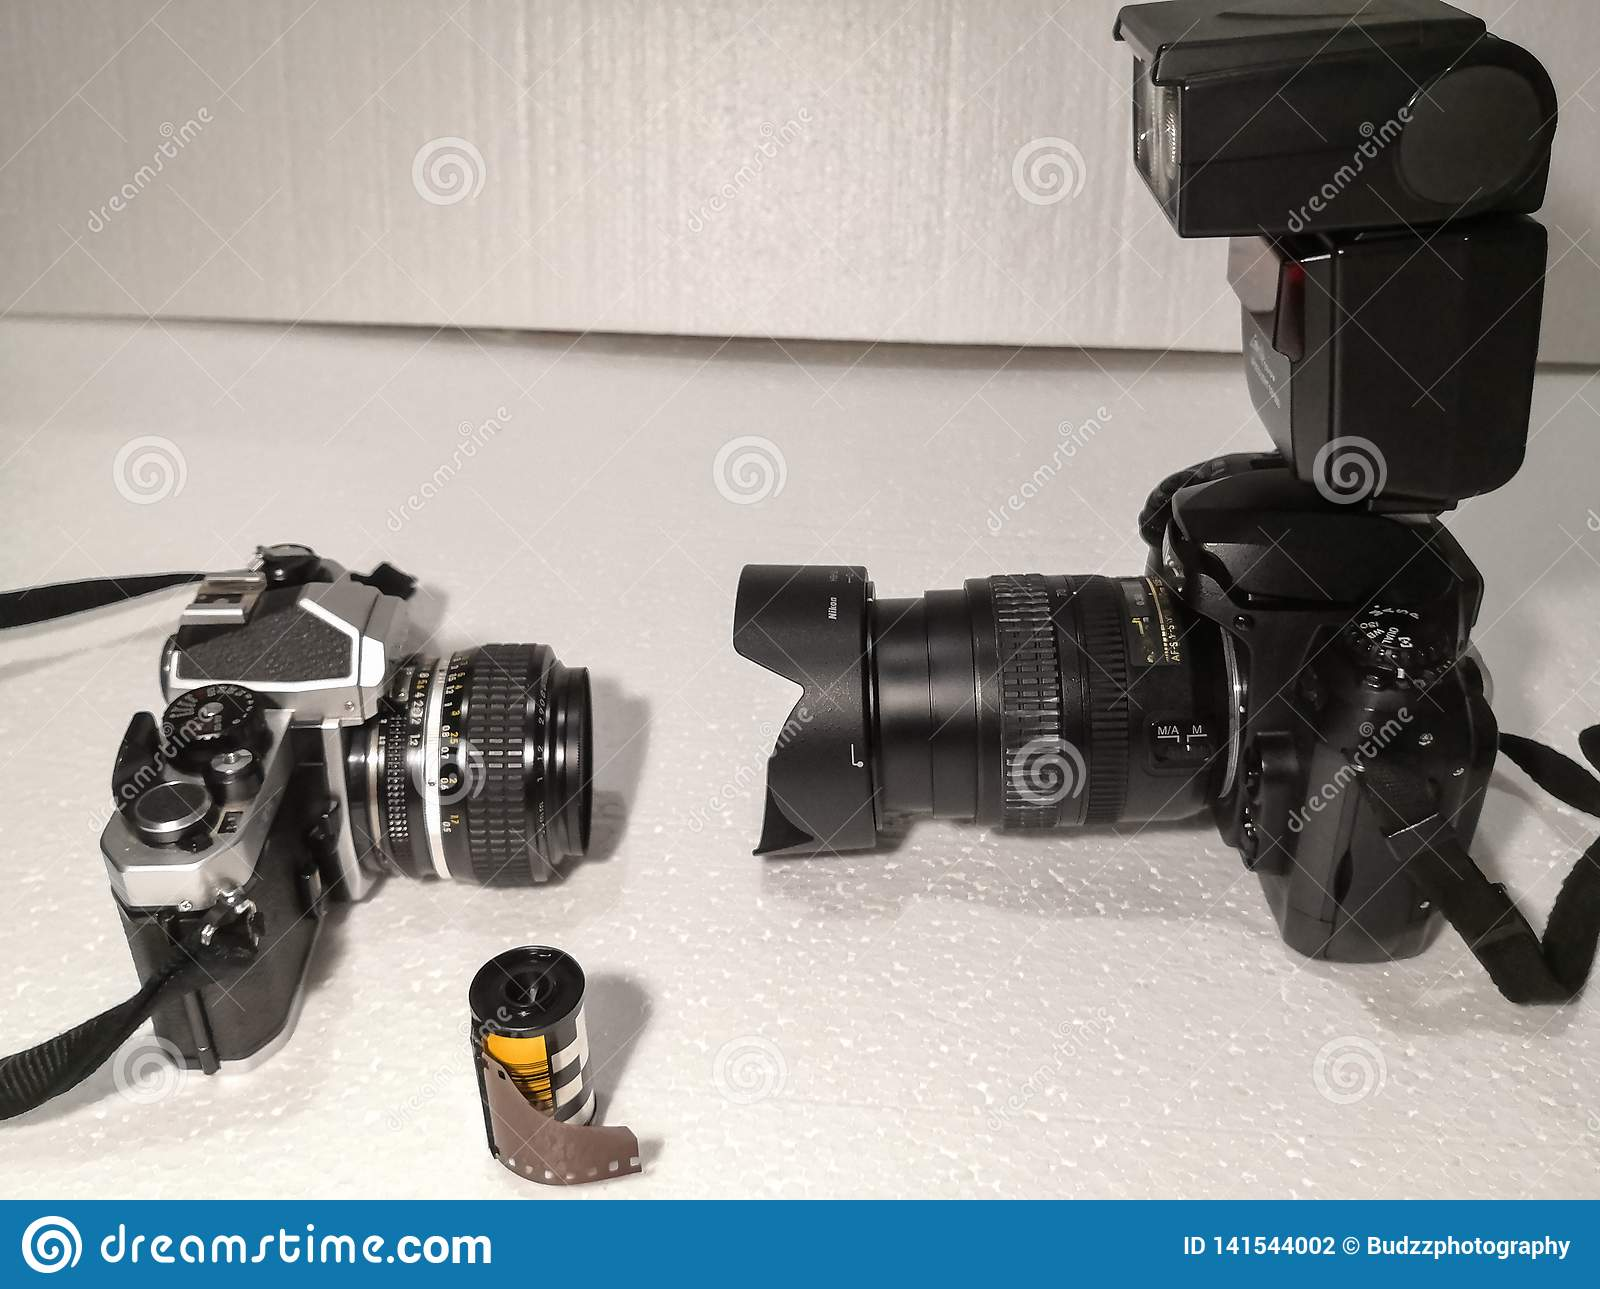 Old and new technology for camera. 1980 manual film camera versus 2002 DSLR AI lens and speedlight.